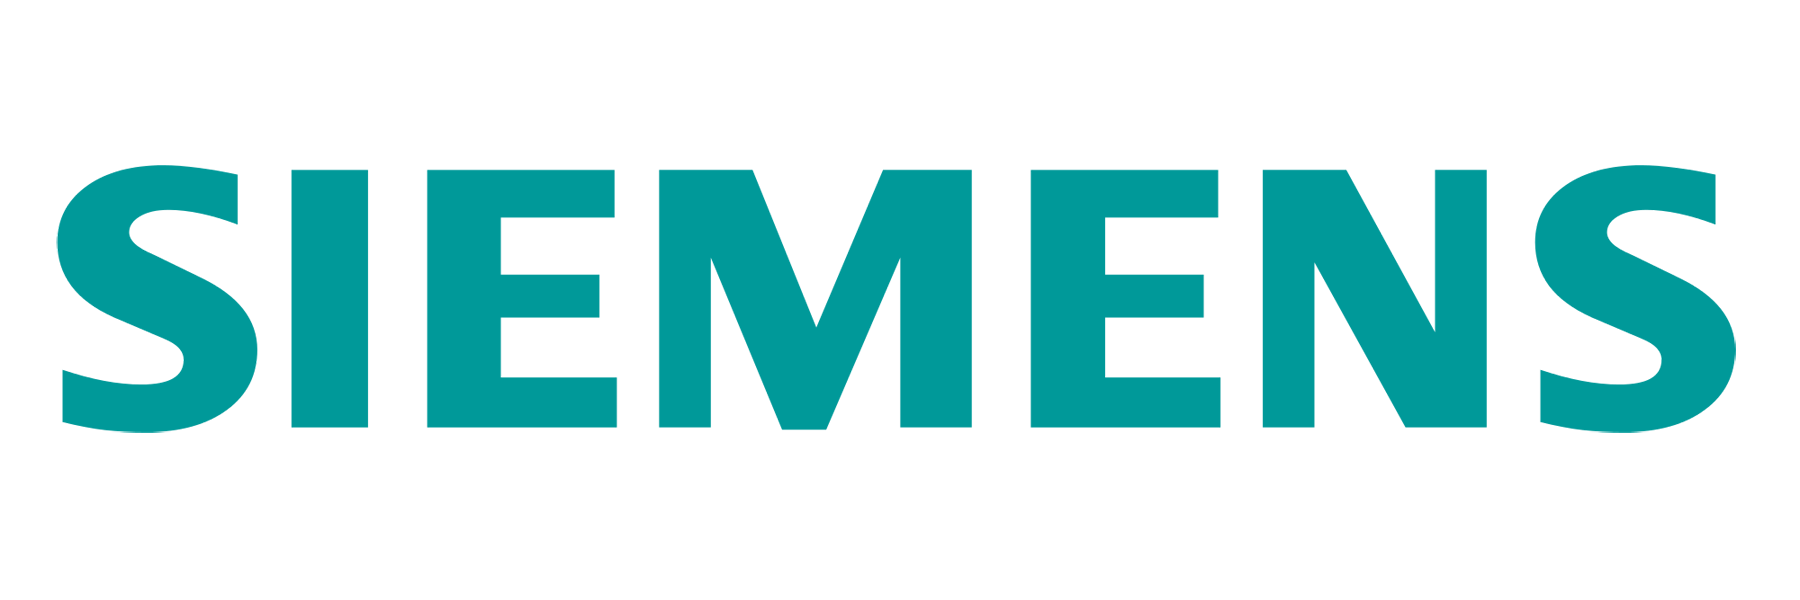 http://iotsys.io/wp-content/uploads/2018/09/Siemens-Logo.png